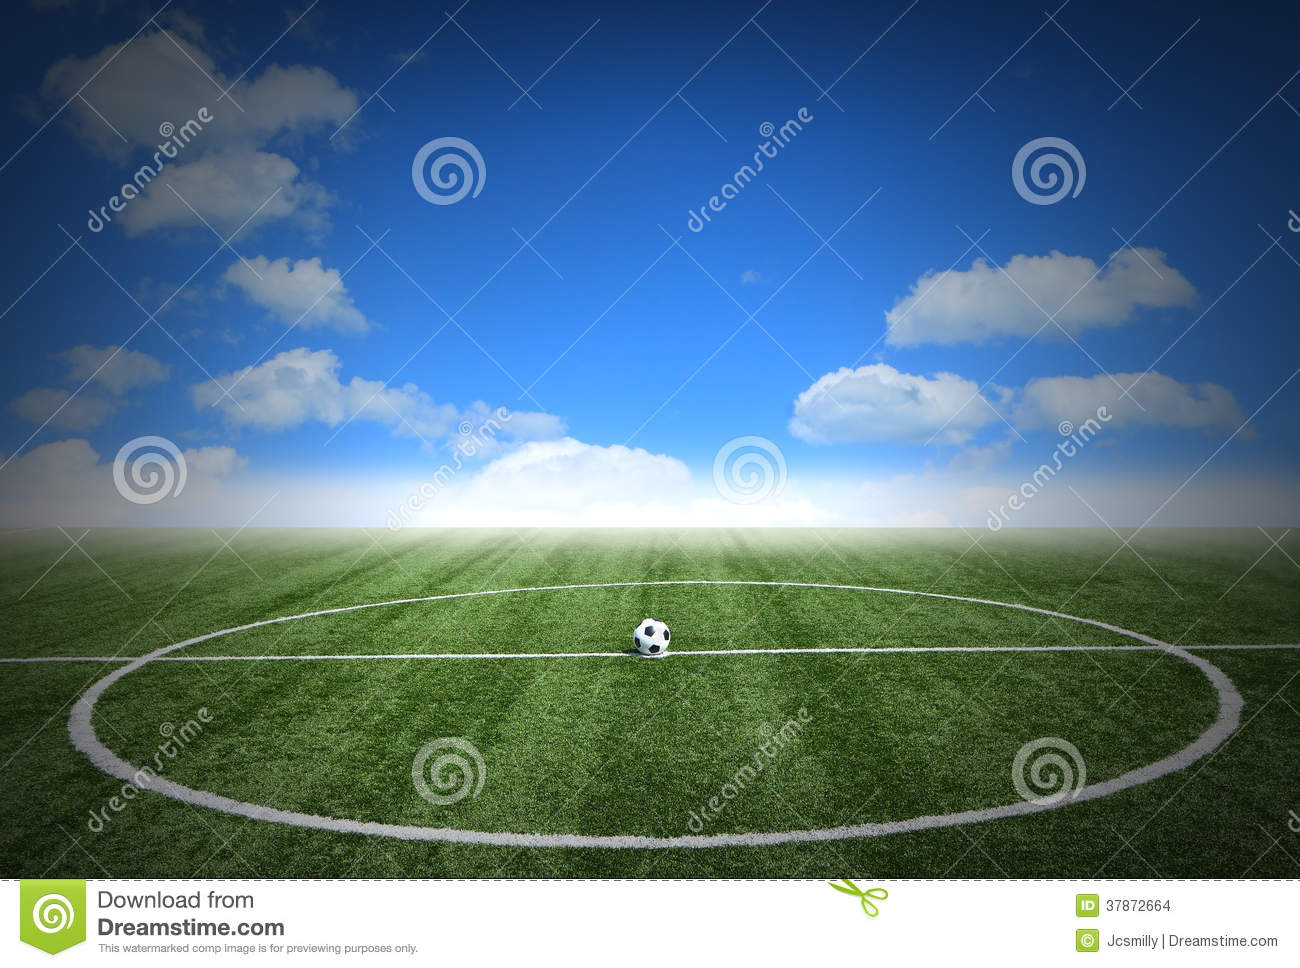 Soccer Football On Green Field With Blue Sky Background: Corner Soccer Green Grass Field With Blue Sky Stock Images